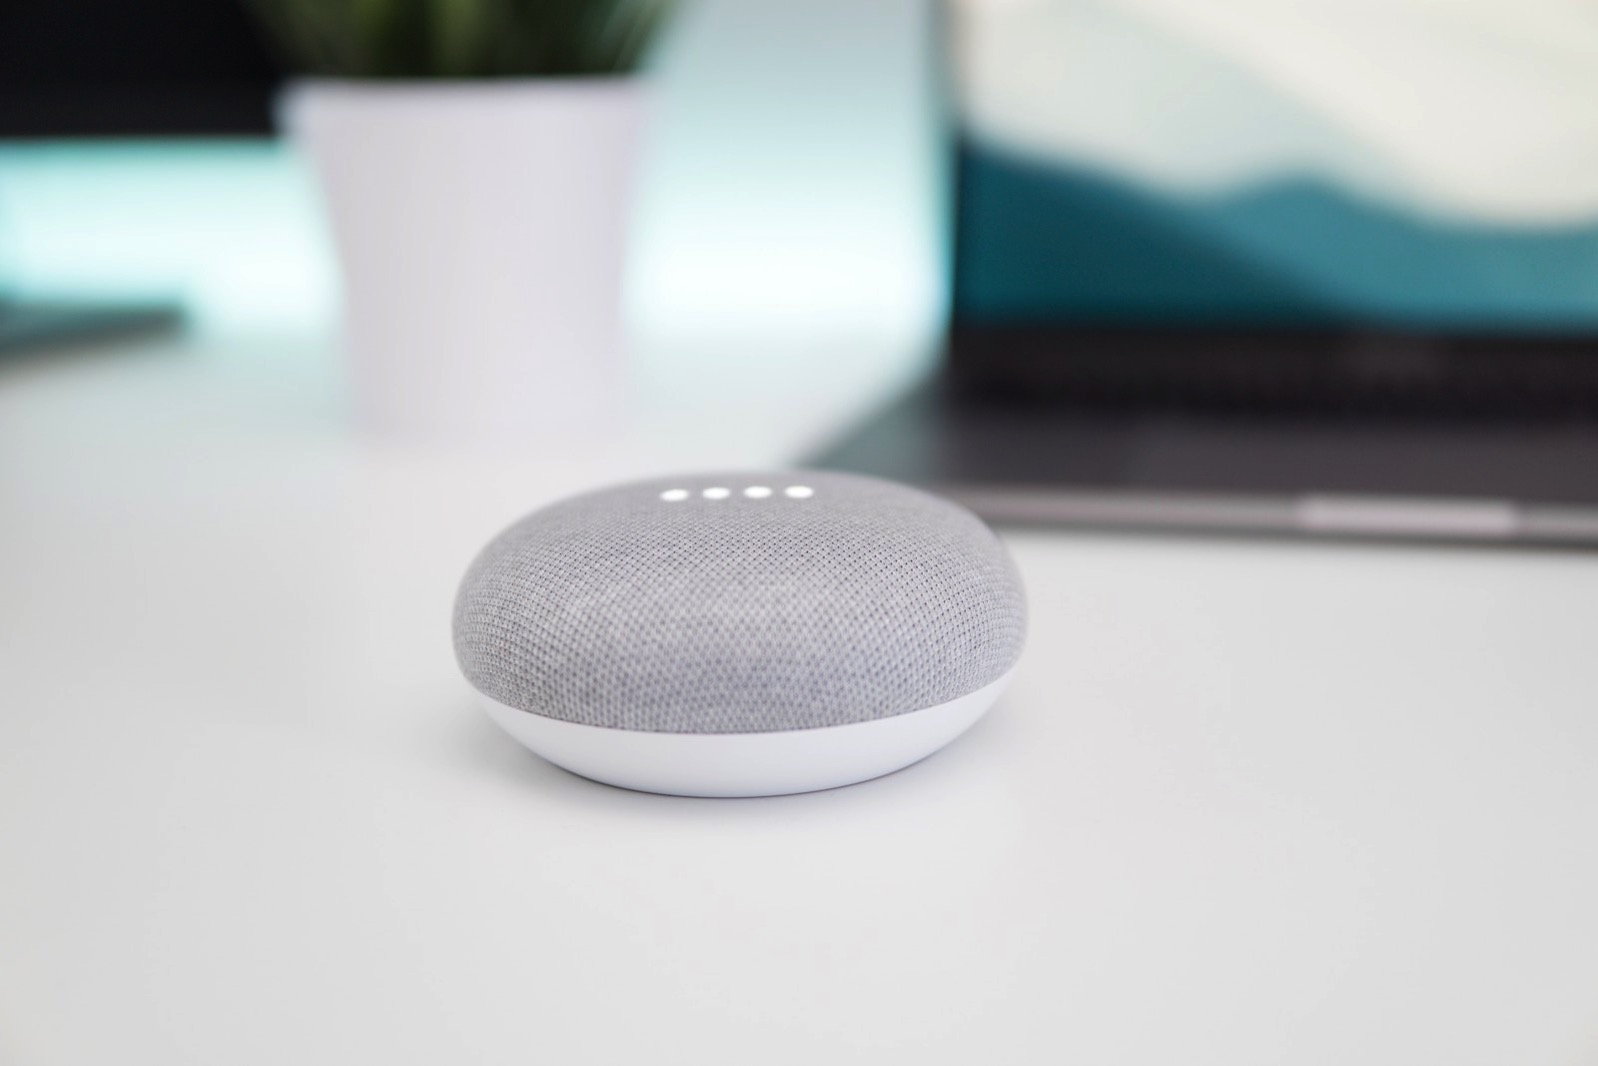 Kevin bhagat 461951 google home unsplash